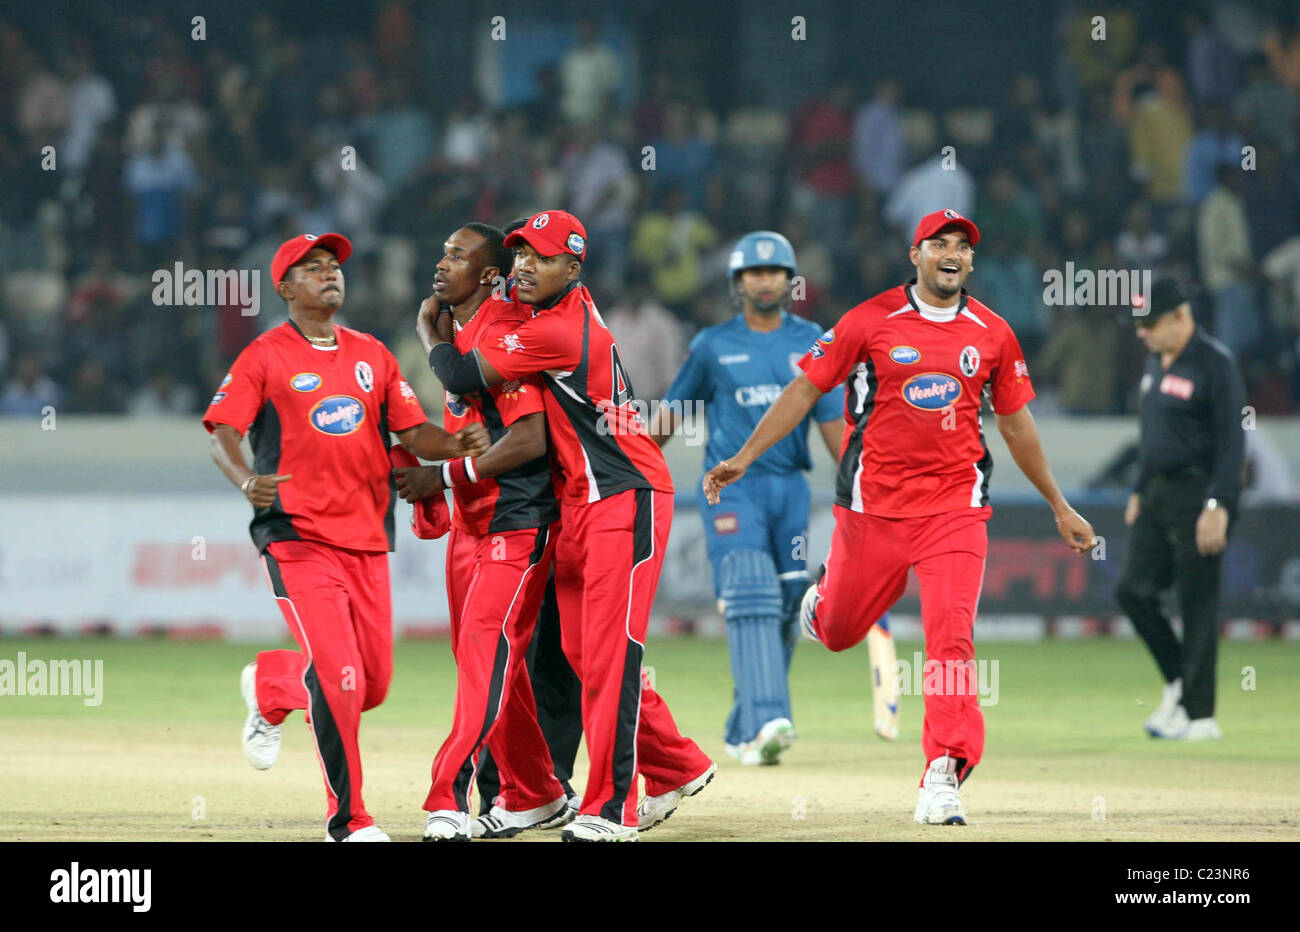 The Champions League Twenty20 Cricket Match Featuring The